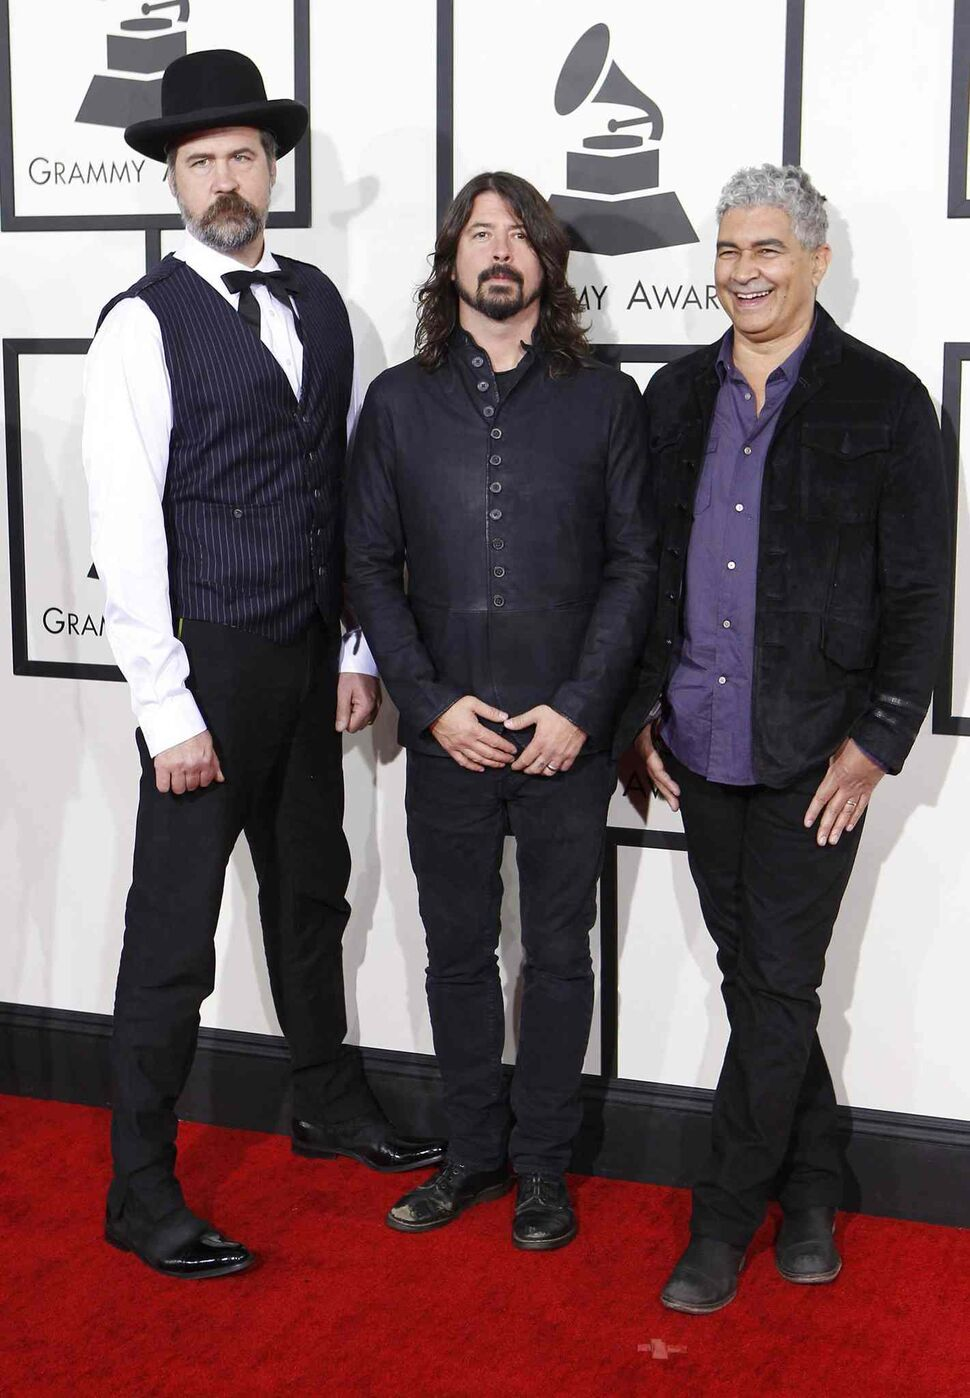 The Foo Fighters arrive at the 56th Annual Grammy Awards. (Wally Skalij / Tribune Media MCT)